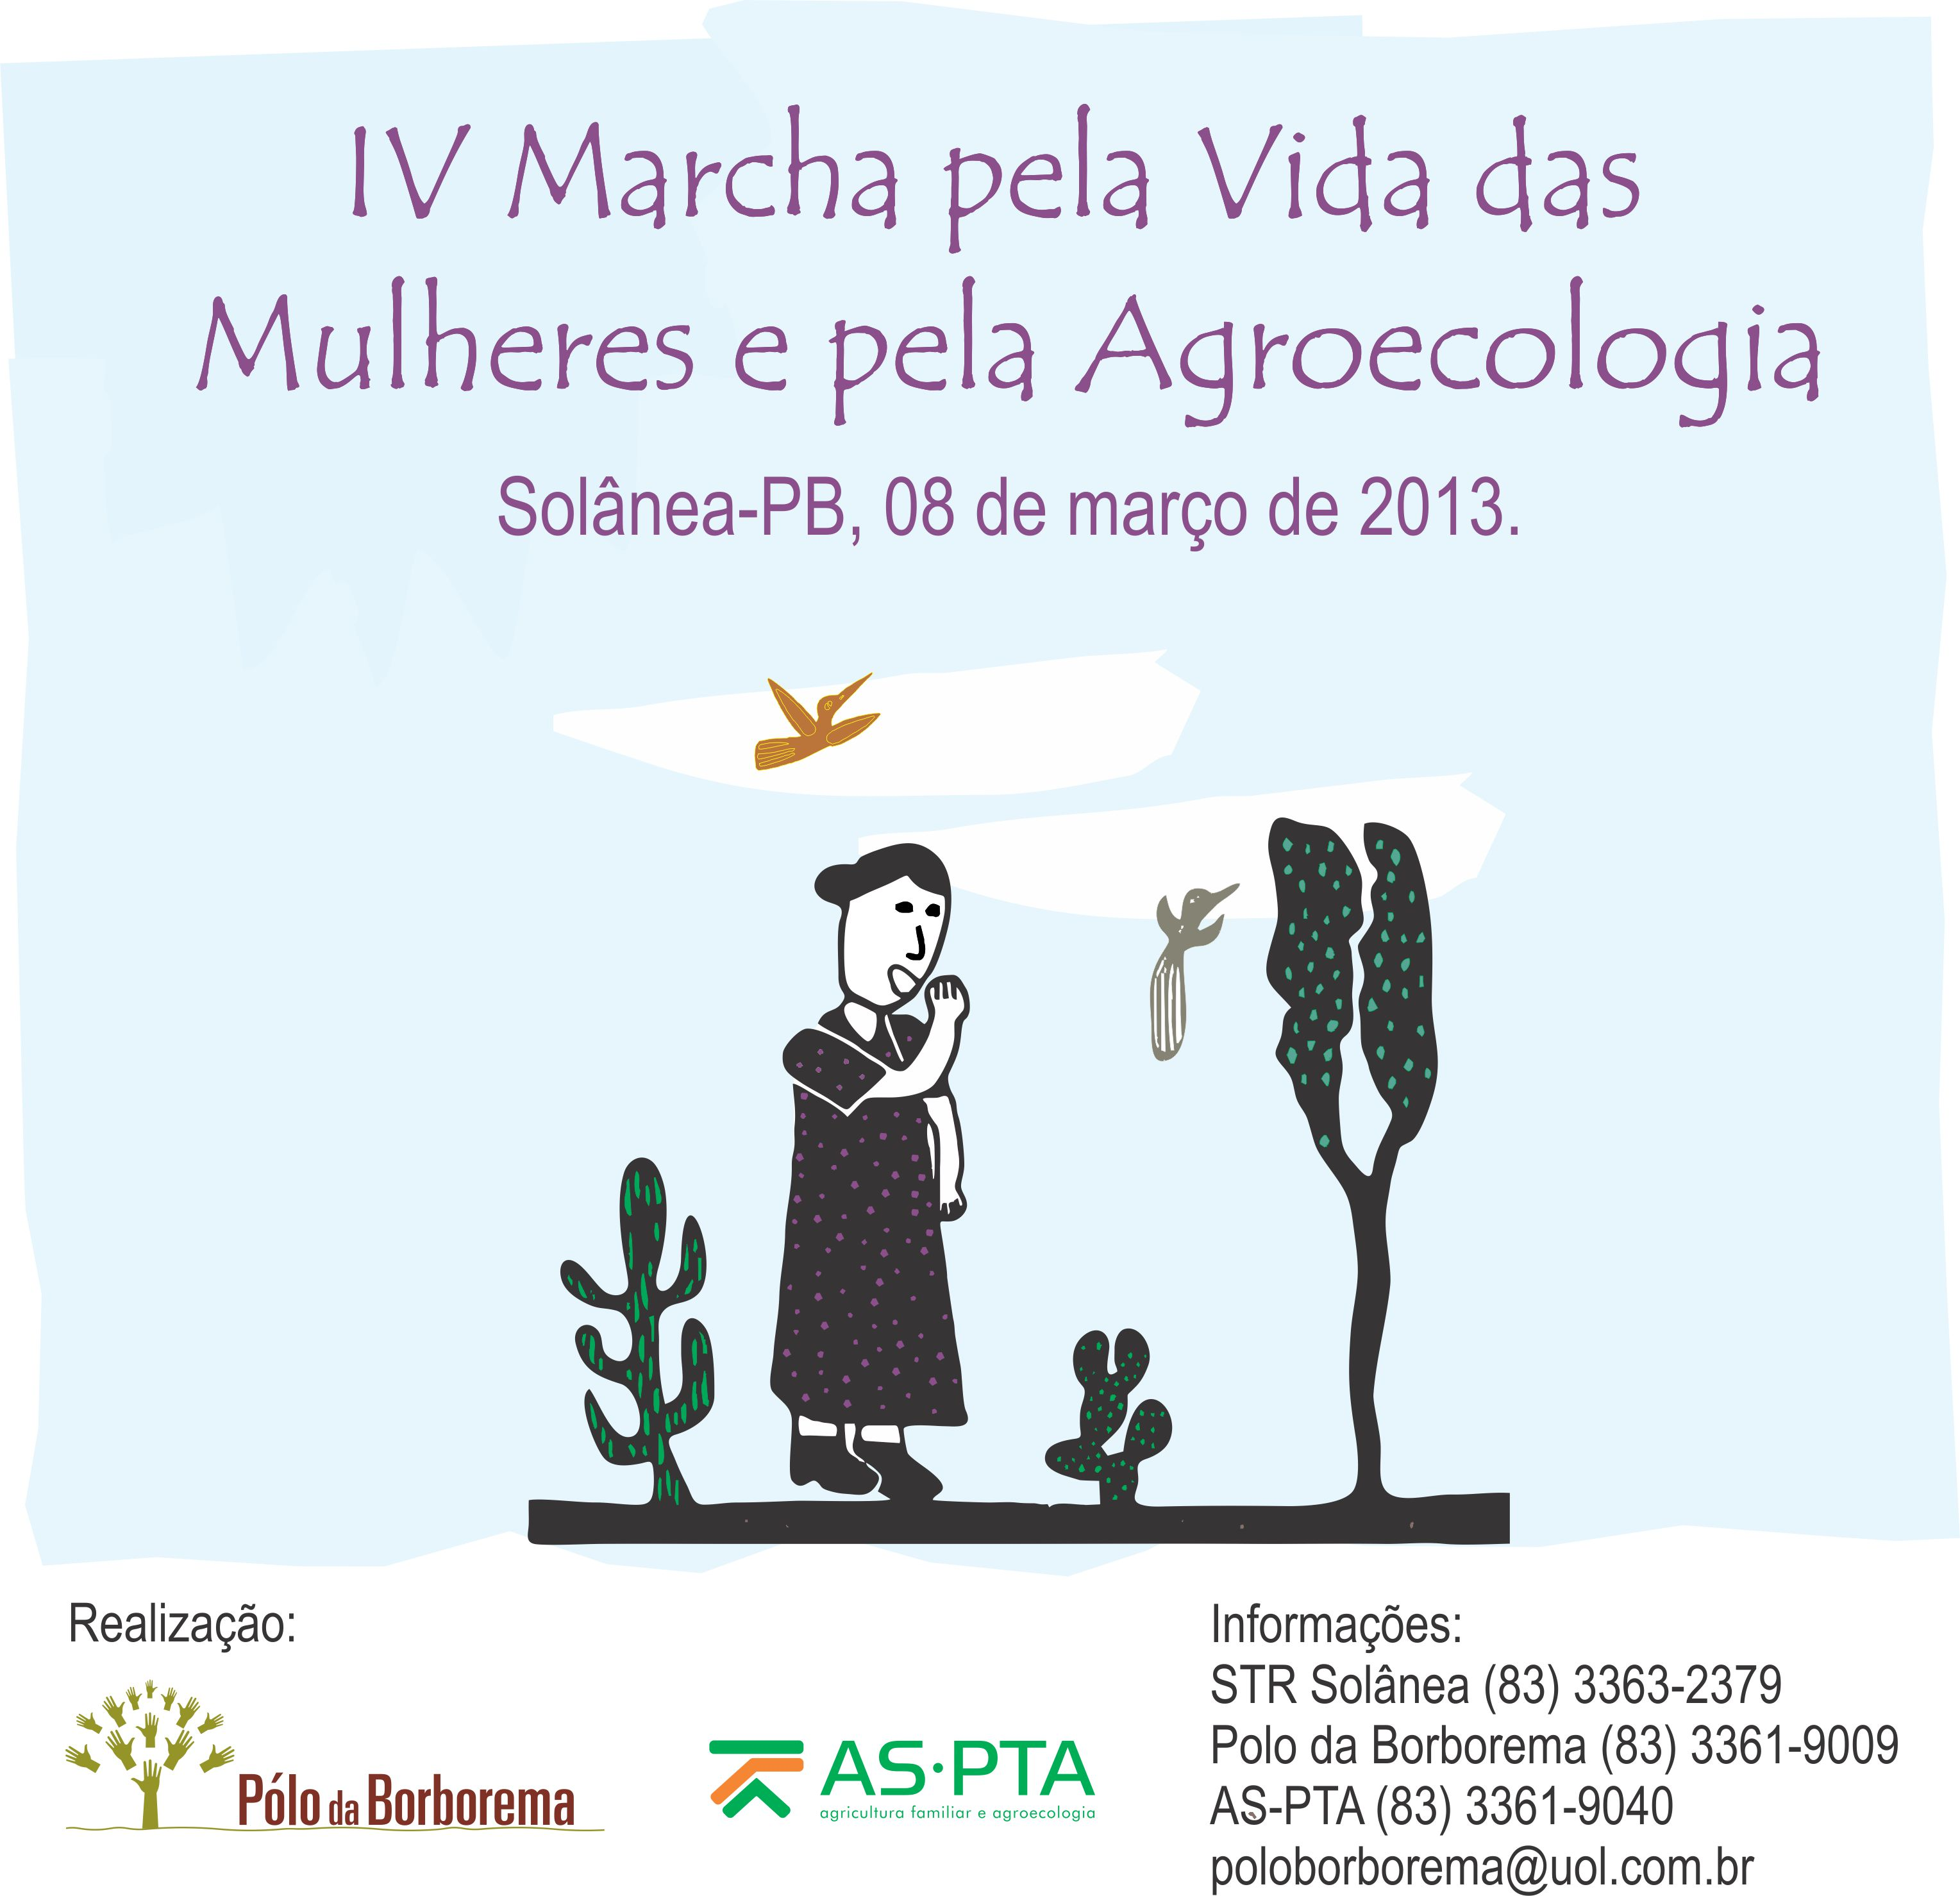 iv marcha mulheres